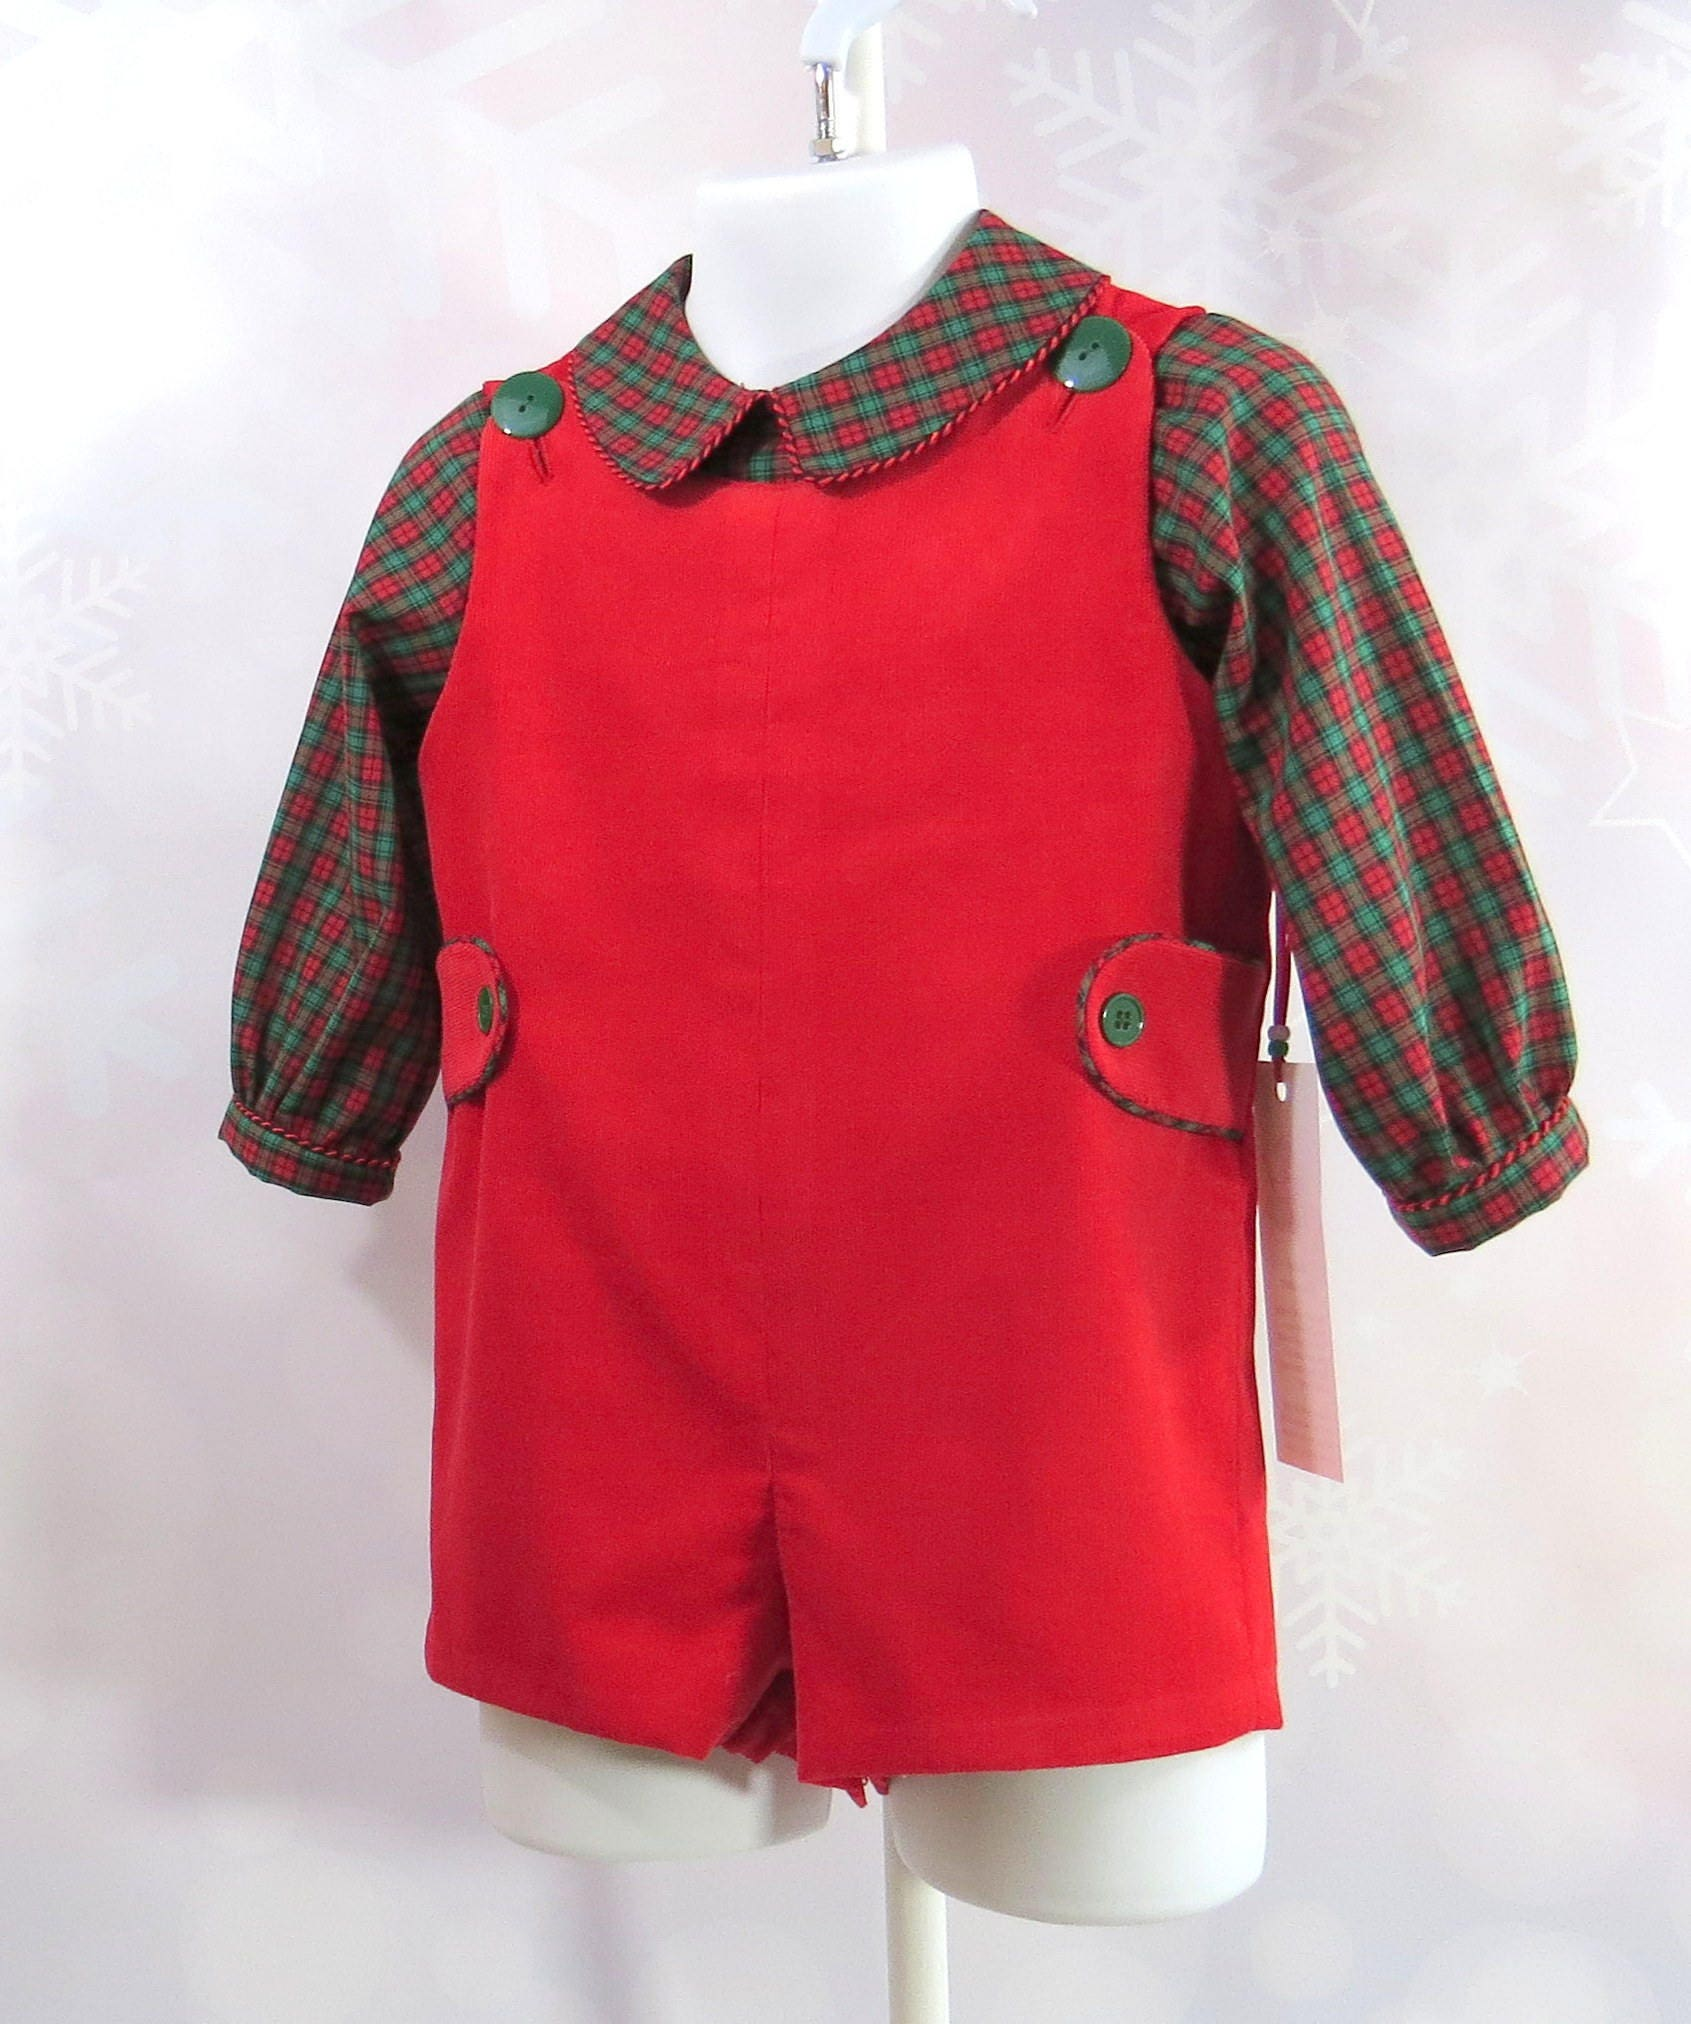 Infant Boy Christmas Outfit Size 12 Months 2 Piece Shirt ...